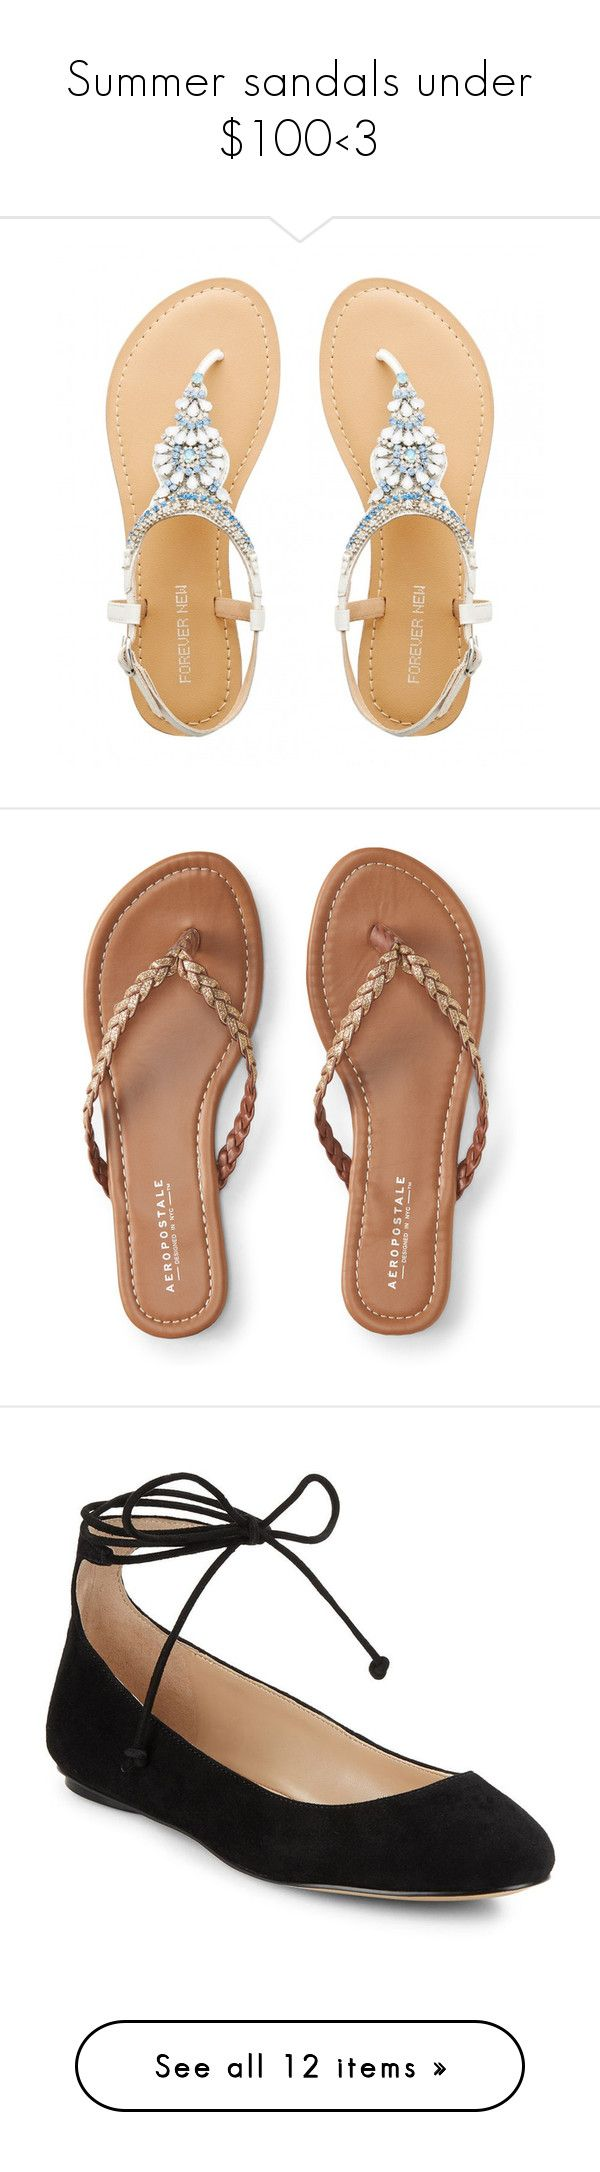 """""""Summer sandals under $100<3"""" by prplbtrfly ❤ liked on Polyvore featuring shoes, sandals, white shoes, jewel shoes, jeweled shoes, white sandals, jeweled sandals, flip flops, gold and woven shoes"""